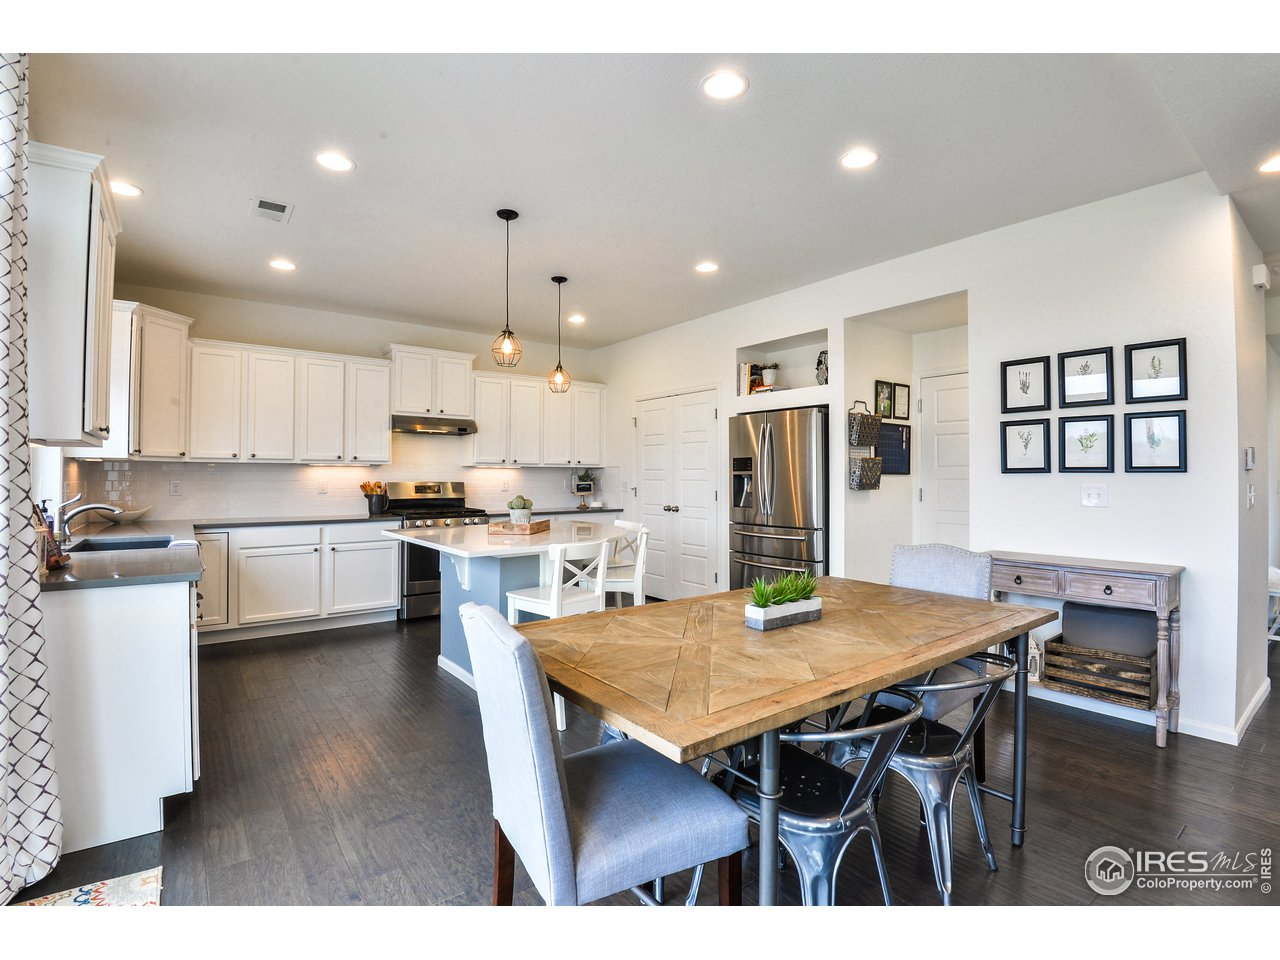 Large Bright Kitchen, Quarts Counters